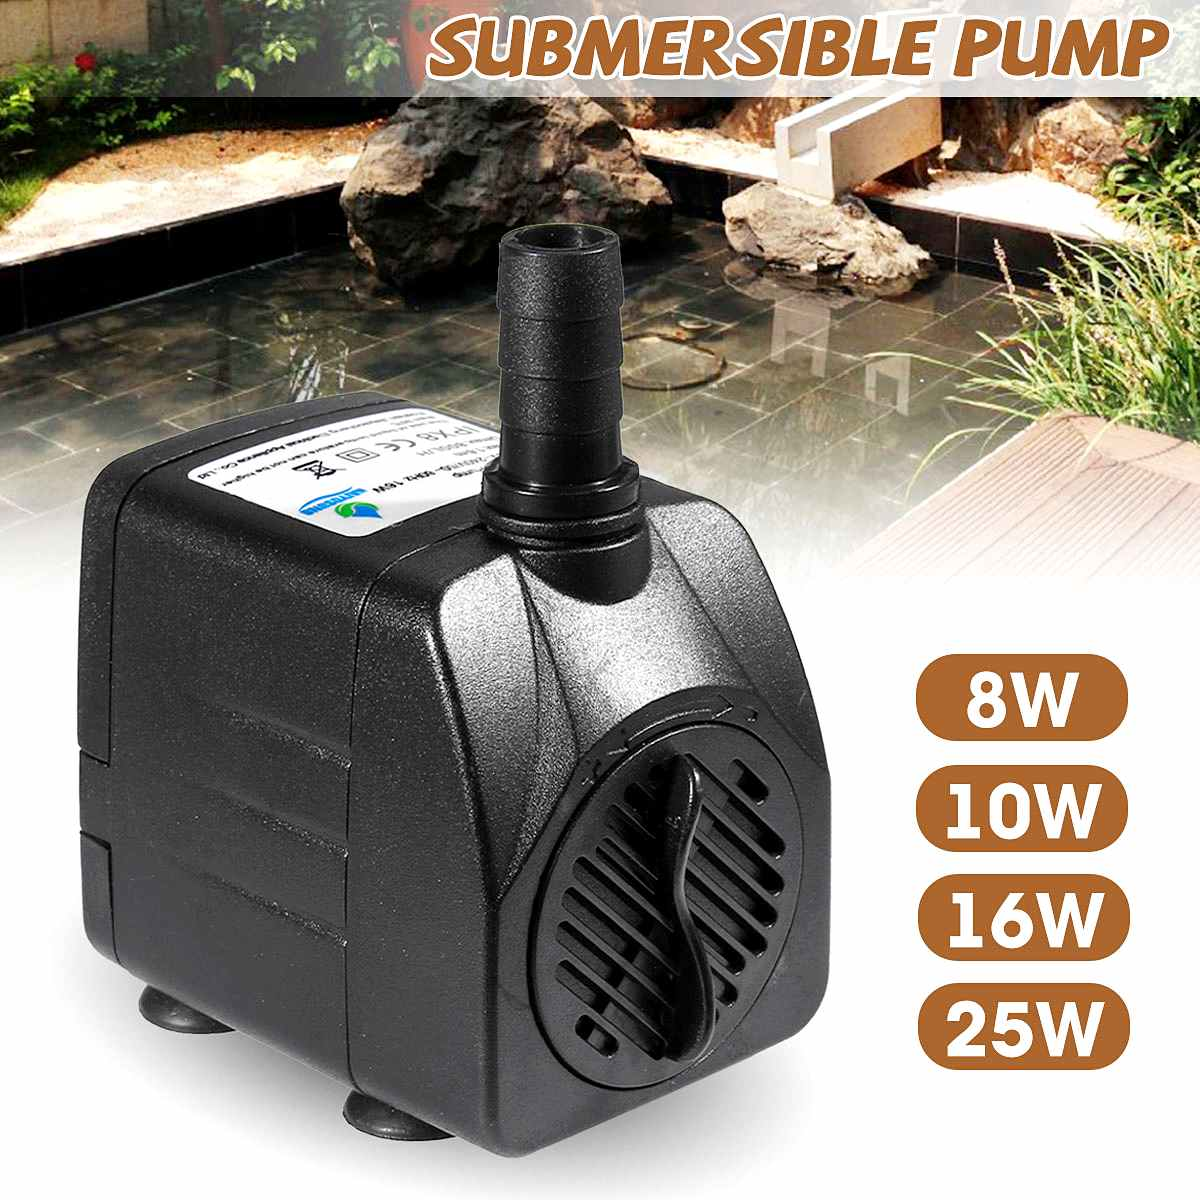 Submersible Water Pump Oxygen Pump 8W/10W/16W/25W Electric Water Pump Aquarium Fish Tank Pond Fountain Garden Decoration 220V